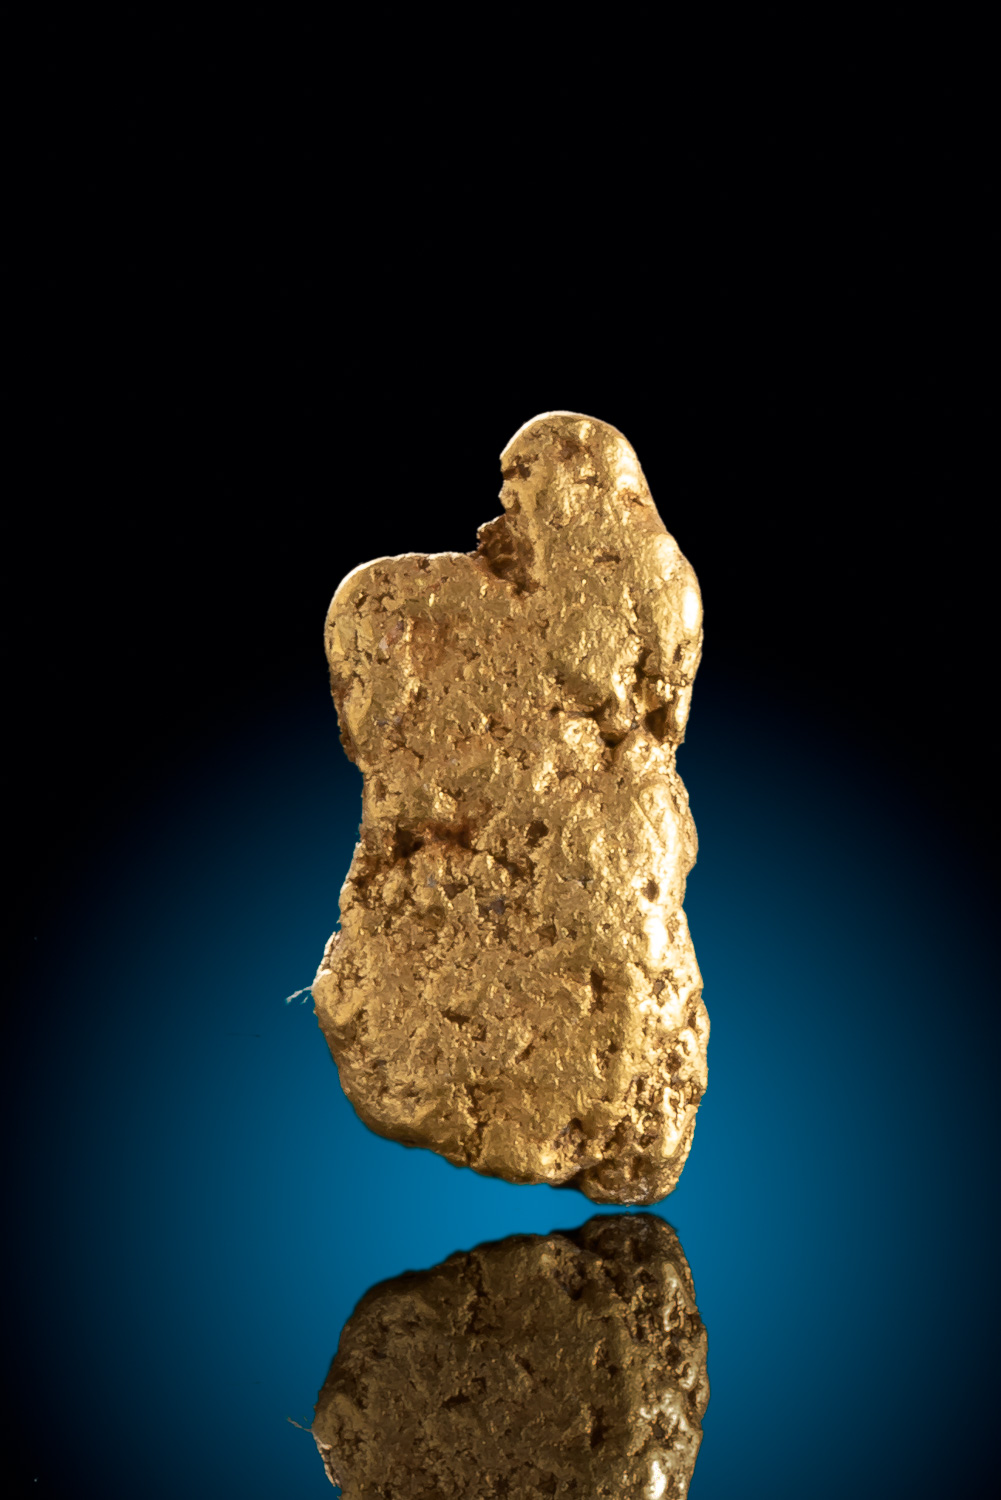 Elongated Natural Gold Nugget from Colorado